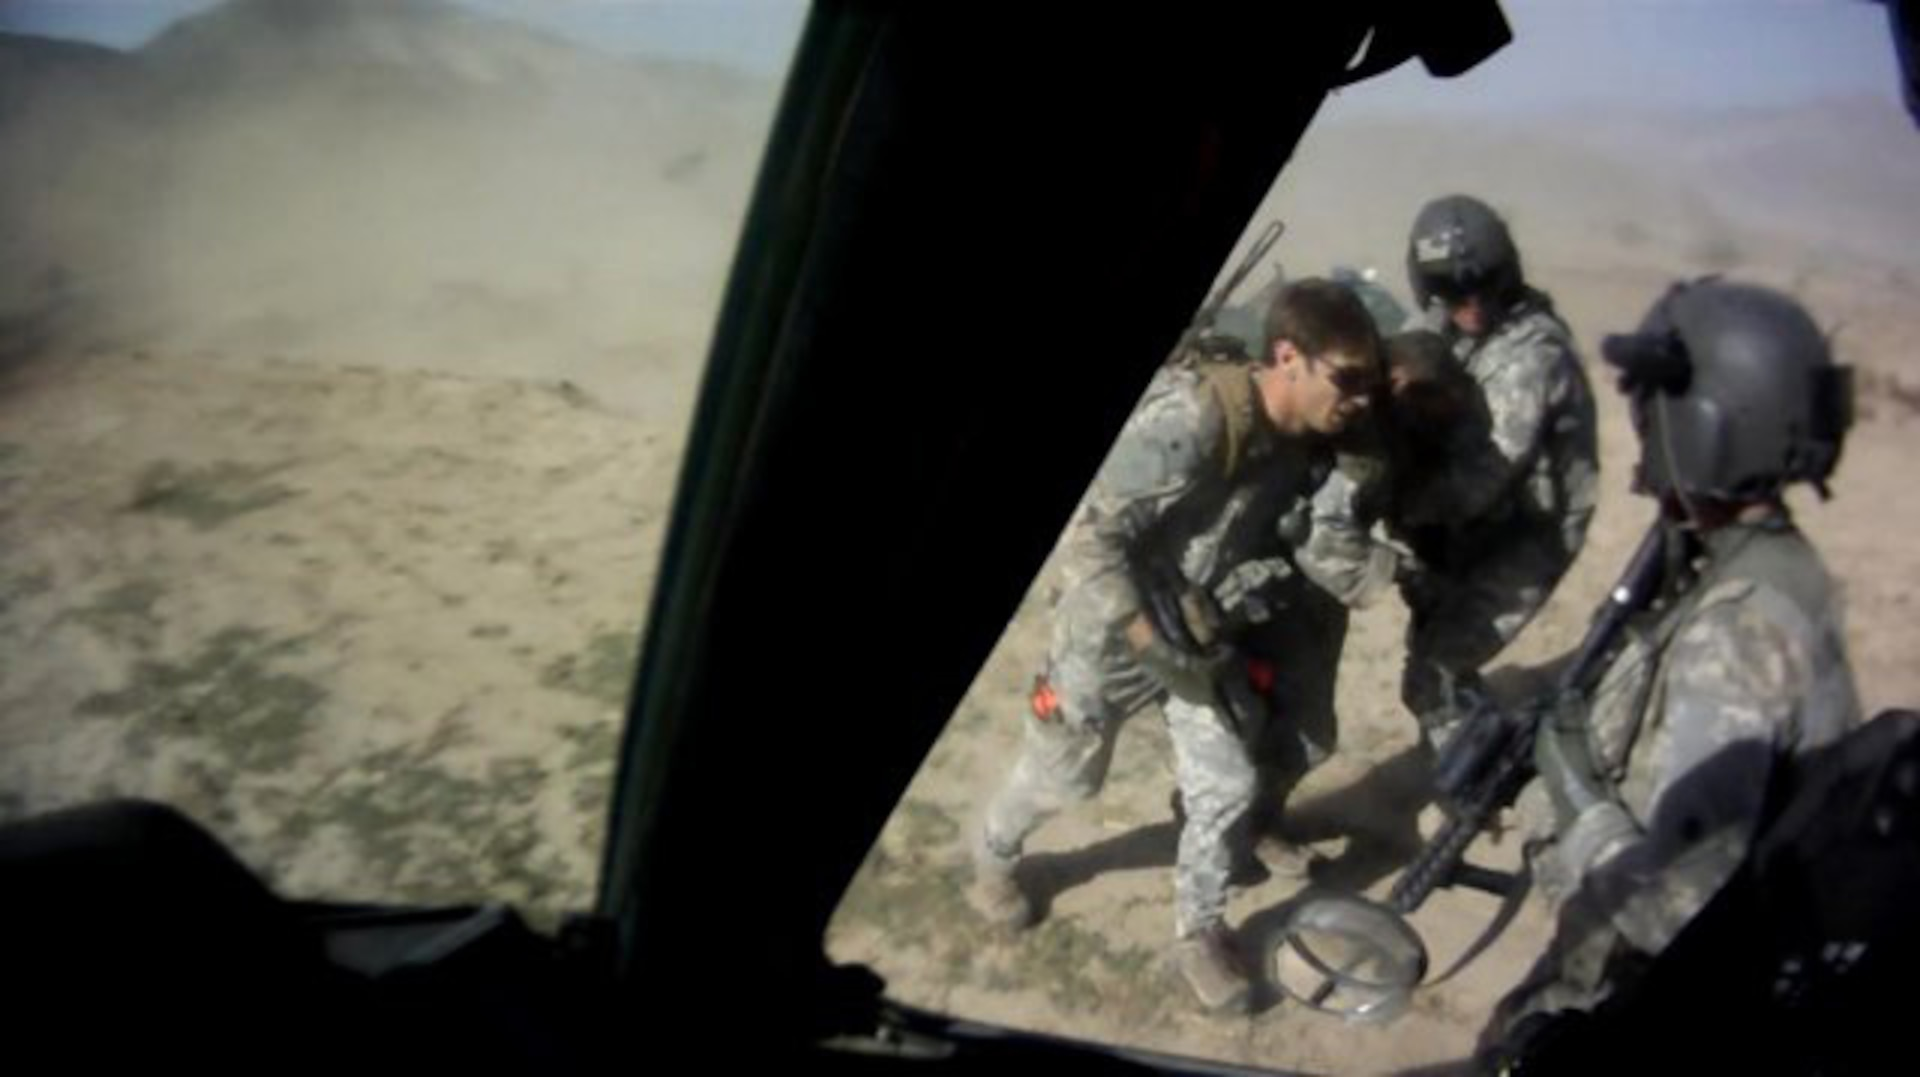 Capt. William Swenson, left, assists severely wounded Sgt. 1st Class Kenneth Westbrook onto a UH-60 Black Hawk helicopter, Sept. 8, 2009, during the Battle of Ganjgal, in Afghanistan. Sgt. Marc Dragony, right, and Staff Sgt. Kevin Duerst, foreground holding an M4 carbine, from the California National Guard, assist.